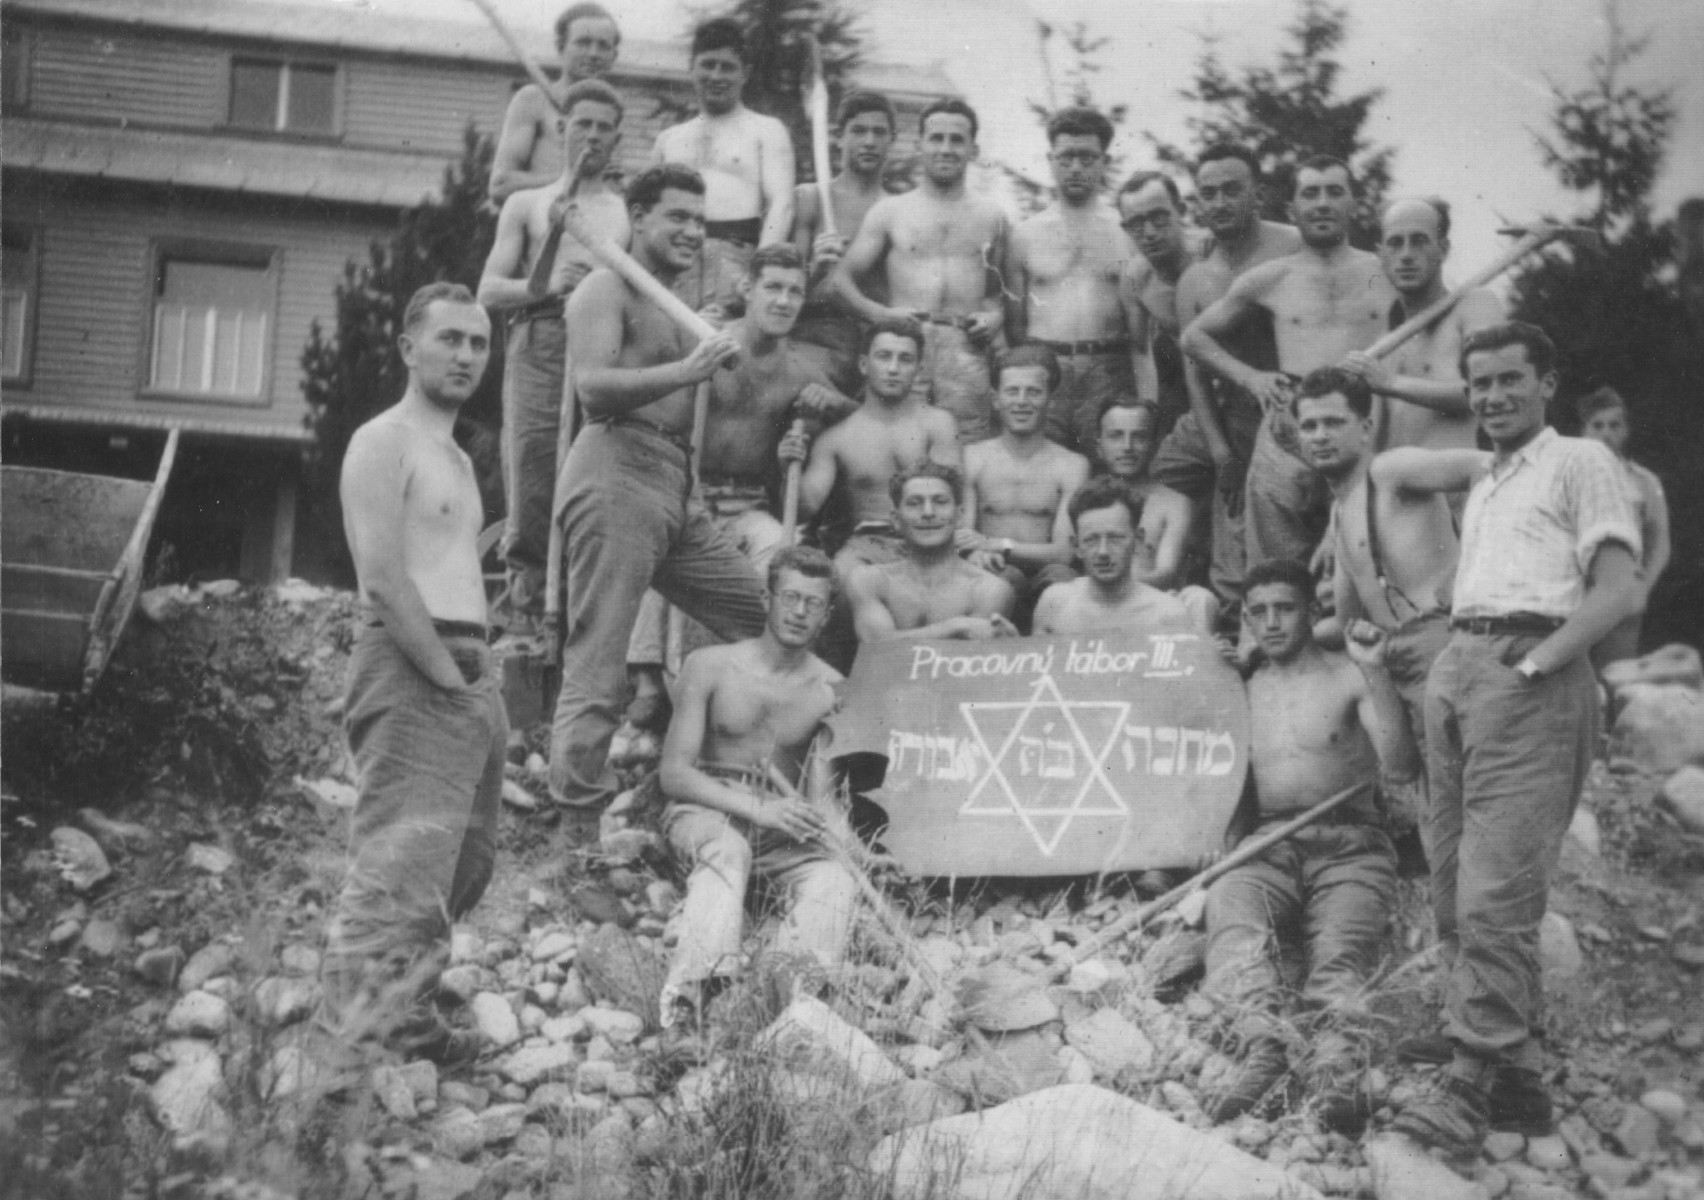 Jewish graduates of a military officers' school pose with a sign in a labor camp in the High Tatras.    Those who had already been commissioned as officers lost their military ranks.  Alexander Bachner is probably standing on the right.  Ernest Neustadt is in the top row, third from the right.